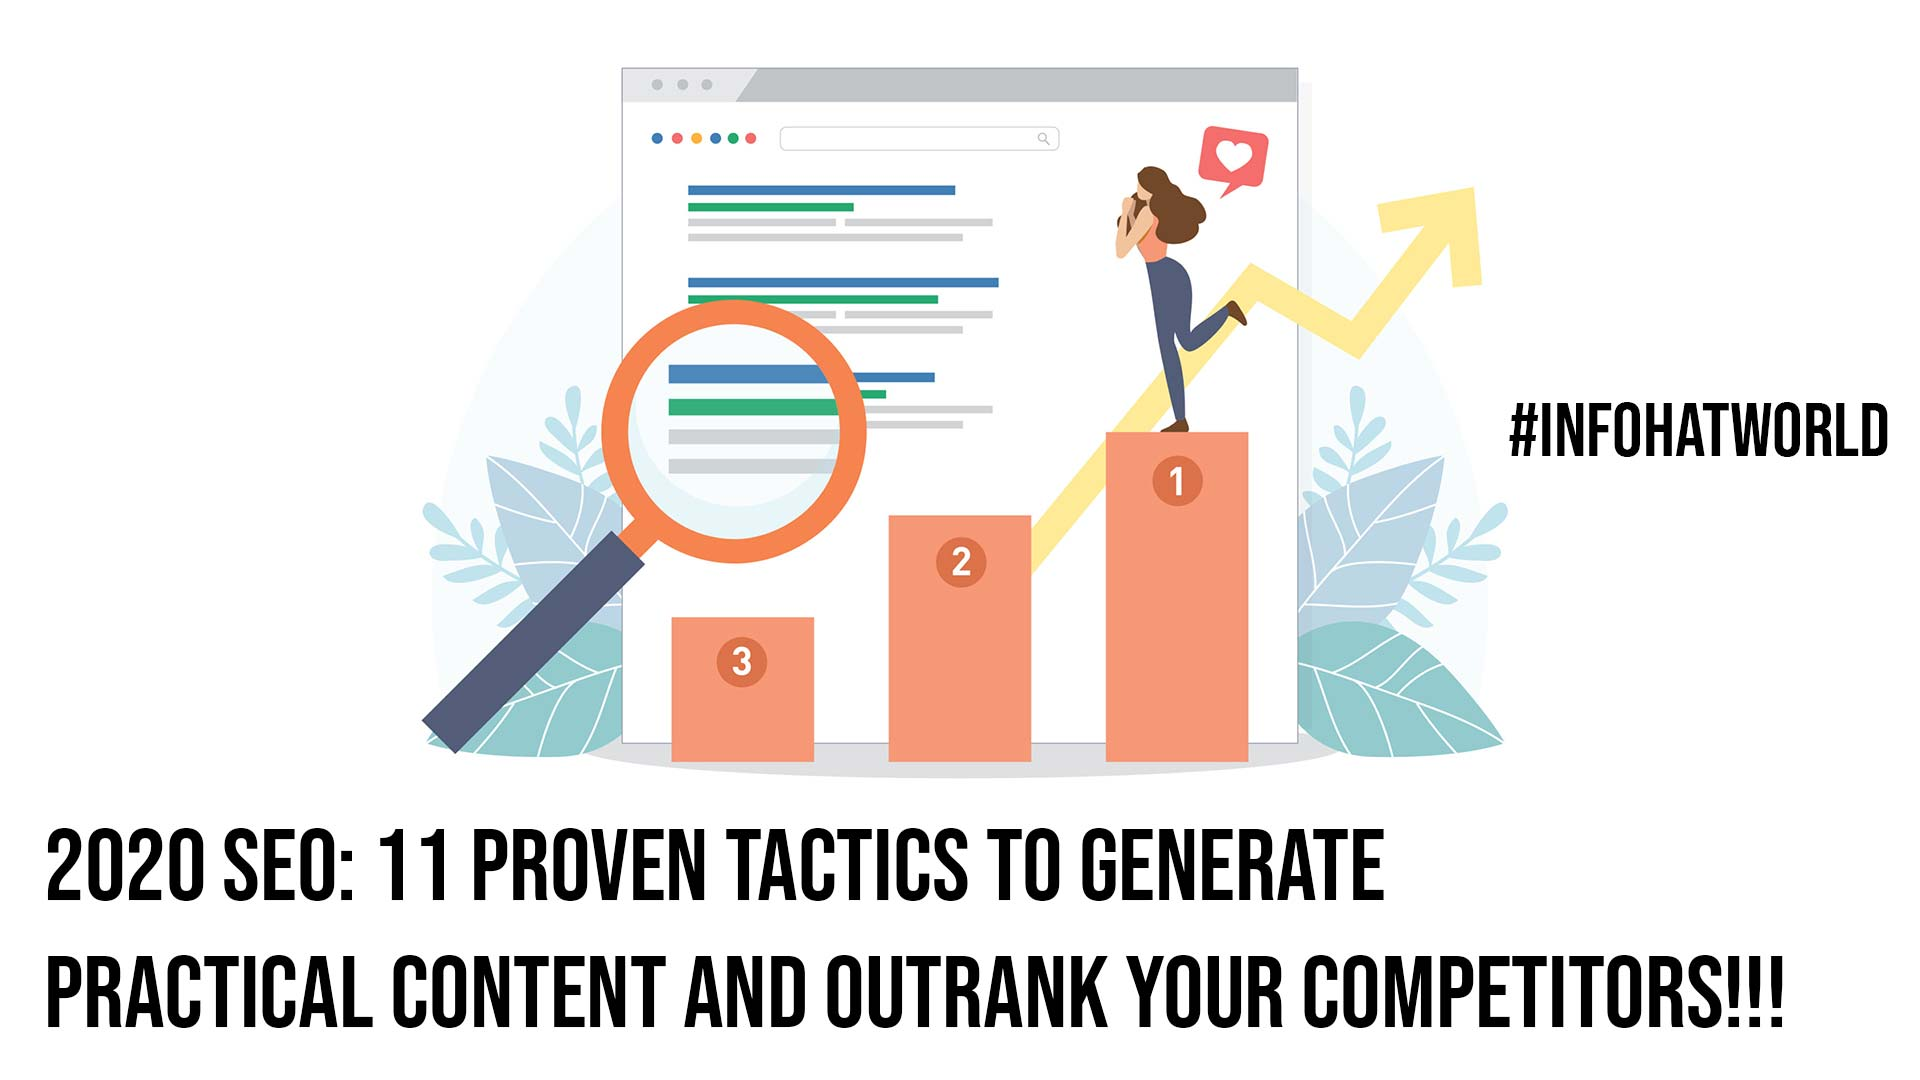 2020 SEO 11 Proven Tactics To Generate Practical Content And Outrank Your Competitors